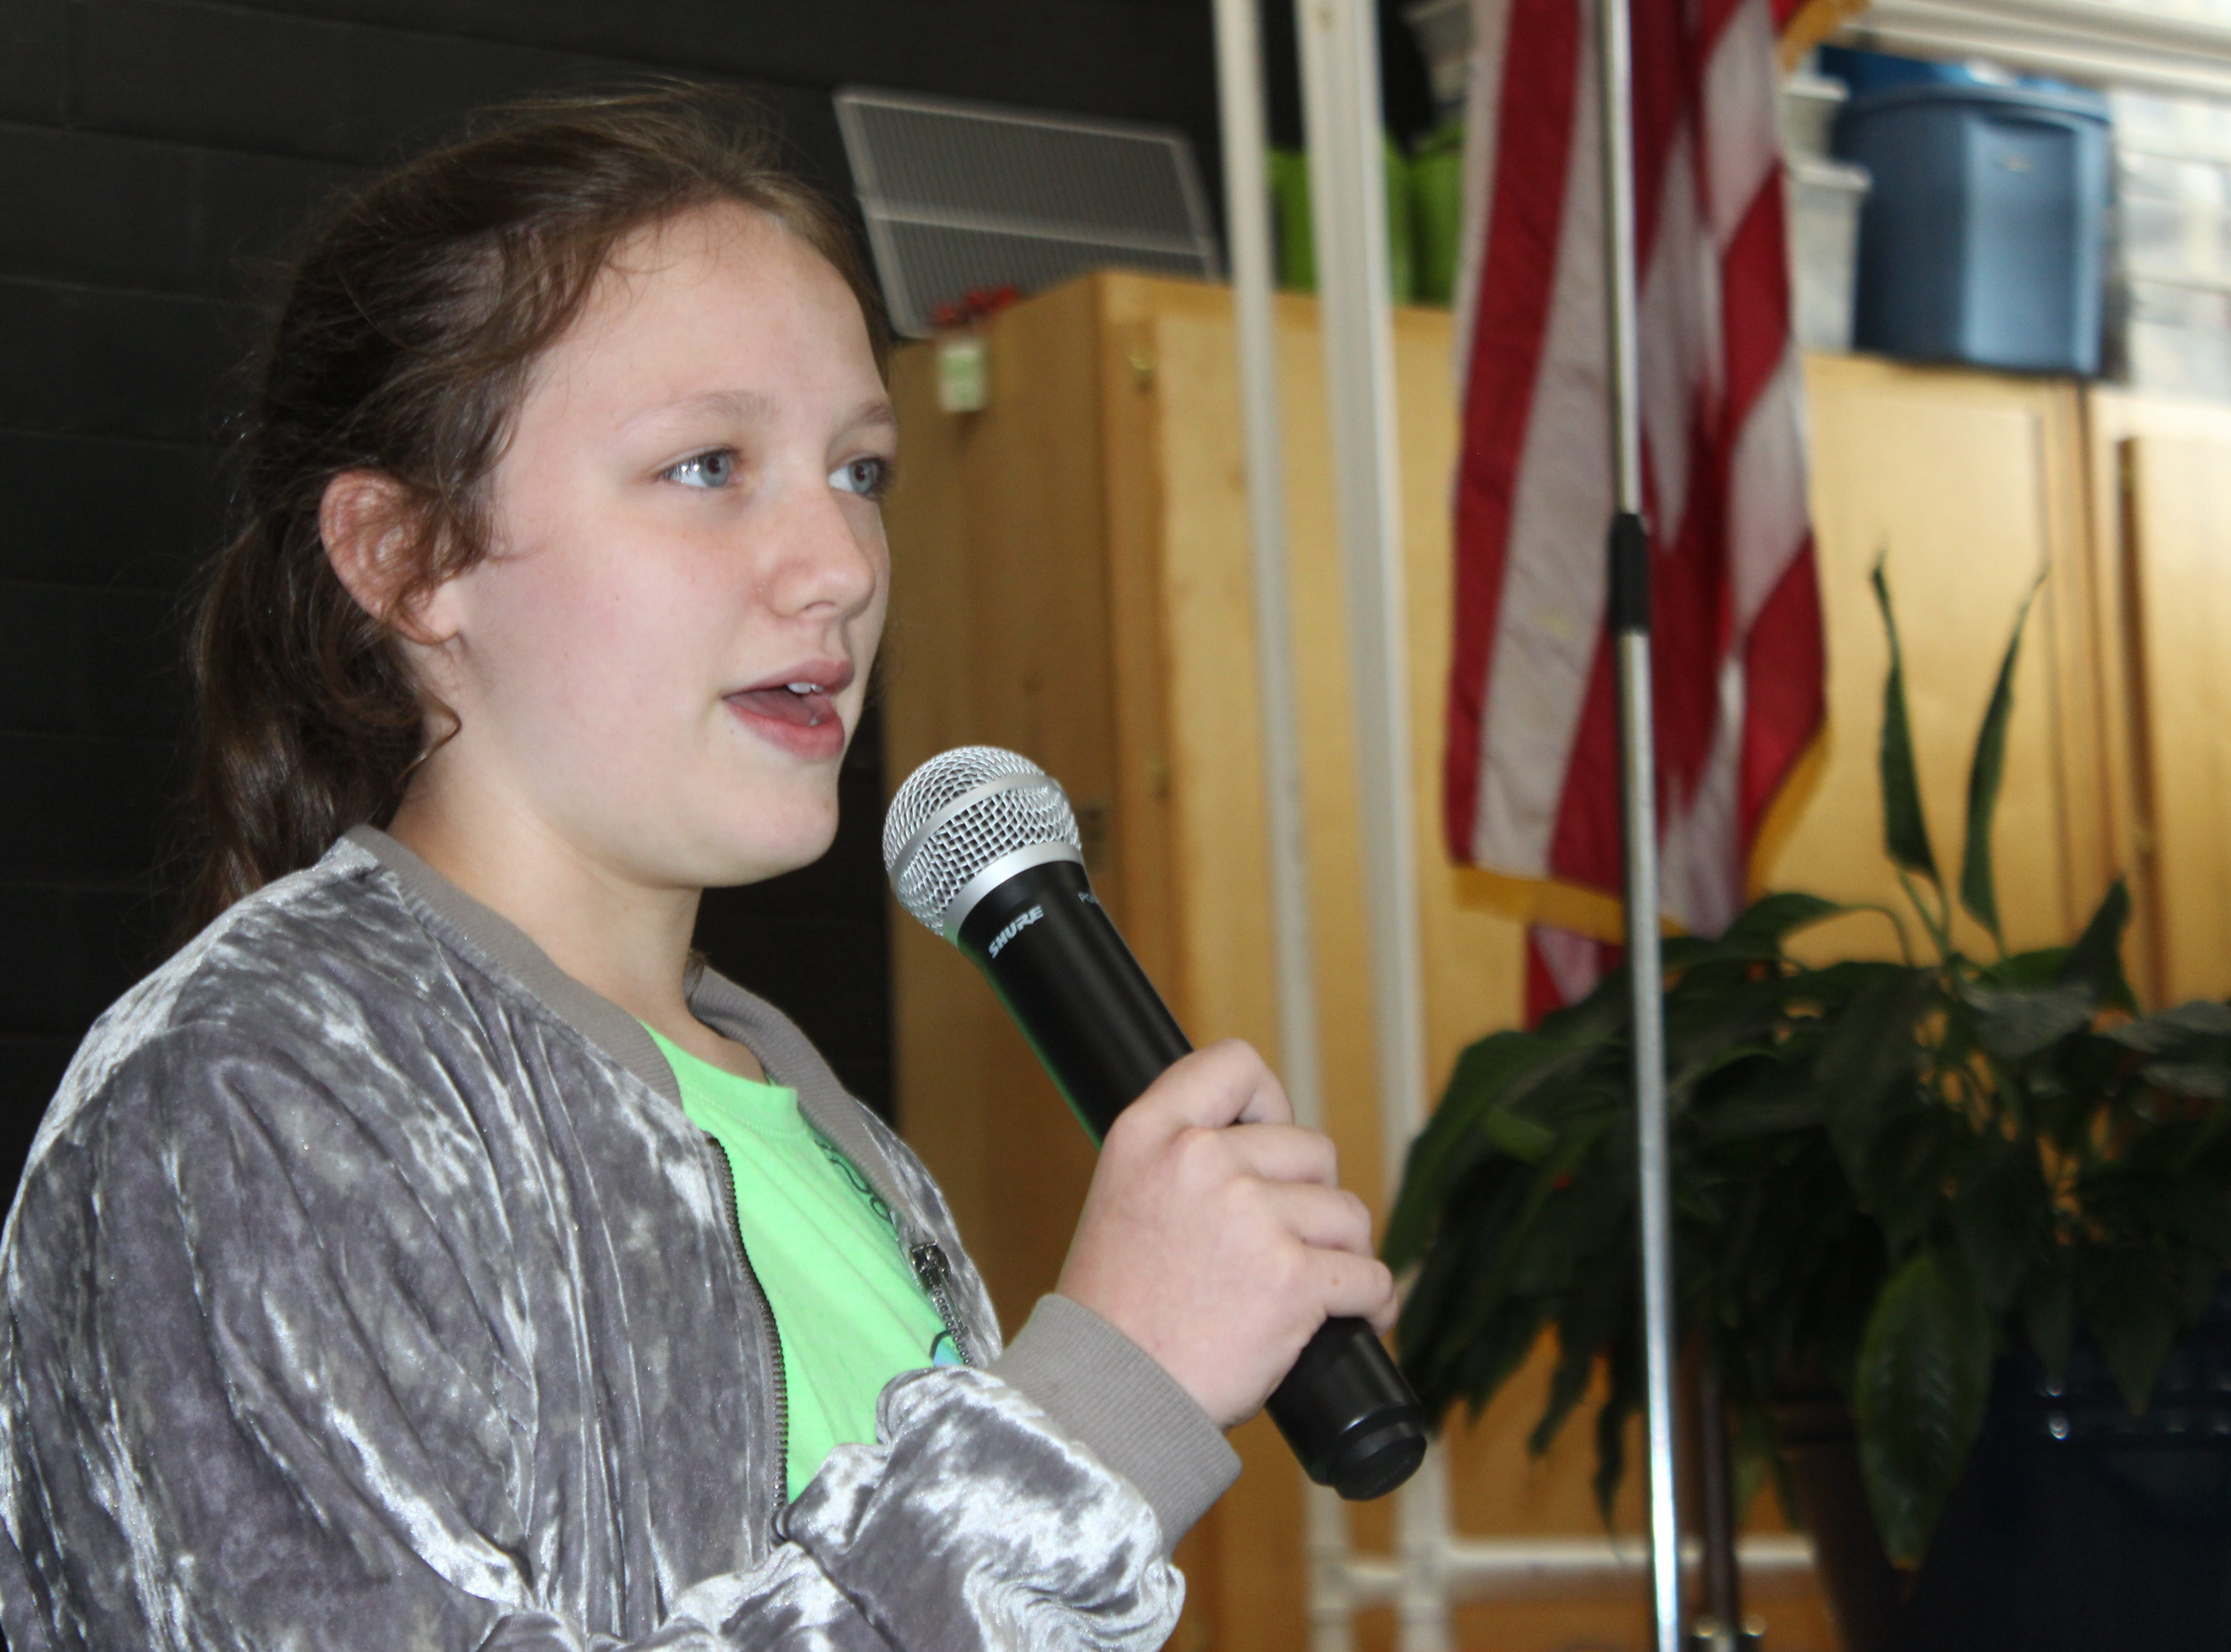 Hailie Latham, a 10-year old fourth grader at Moore Magnet Elementary, speaks to her classmates about the day she saved lives with her quick-thinking actions.